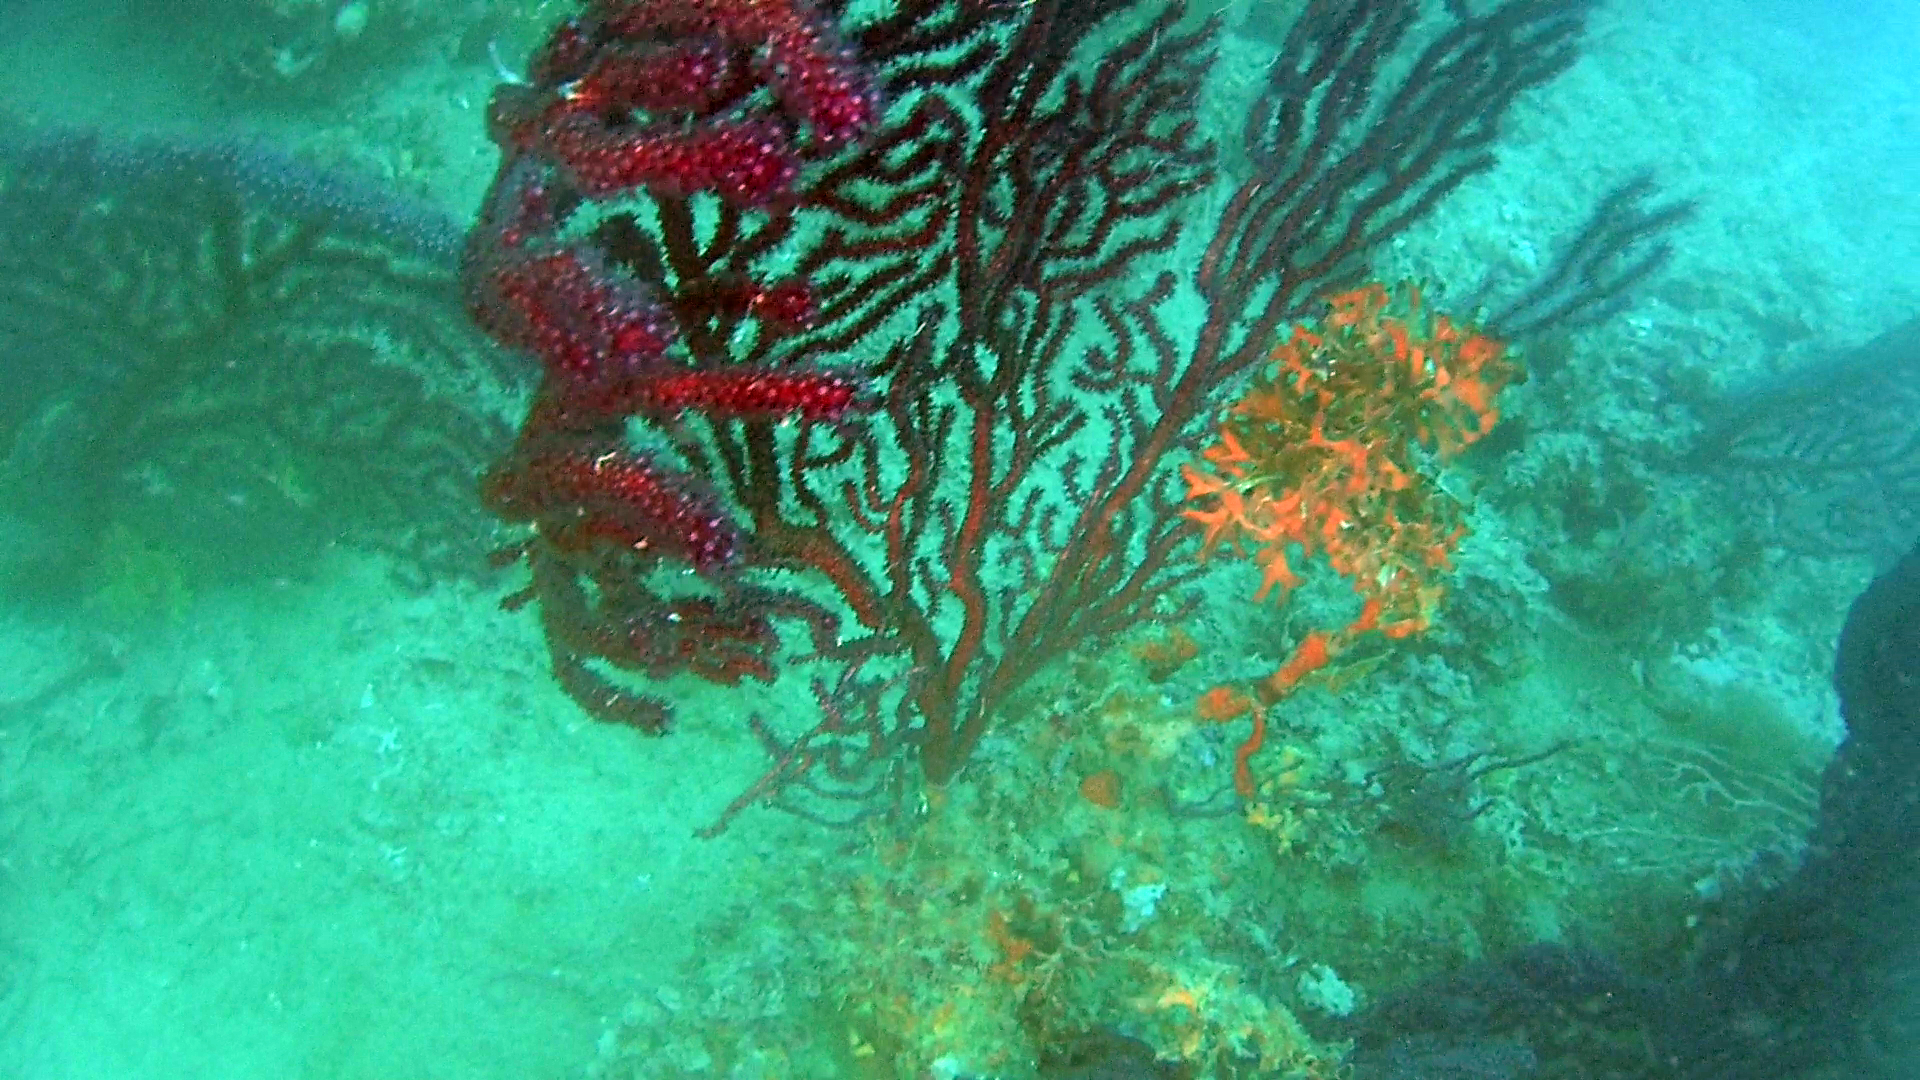 Gorgonia rossa parassitata da Alga rossa - Red algae on Violescente Sea-whip - intotheblue.it